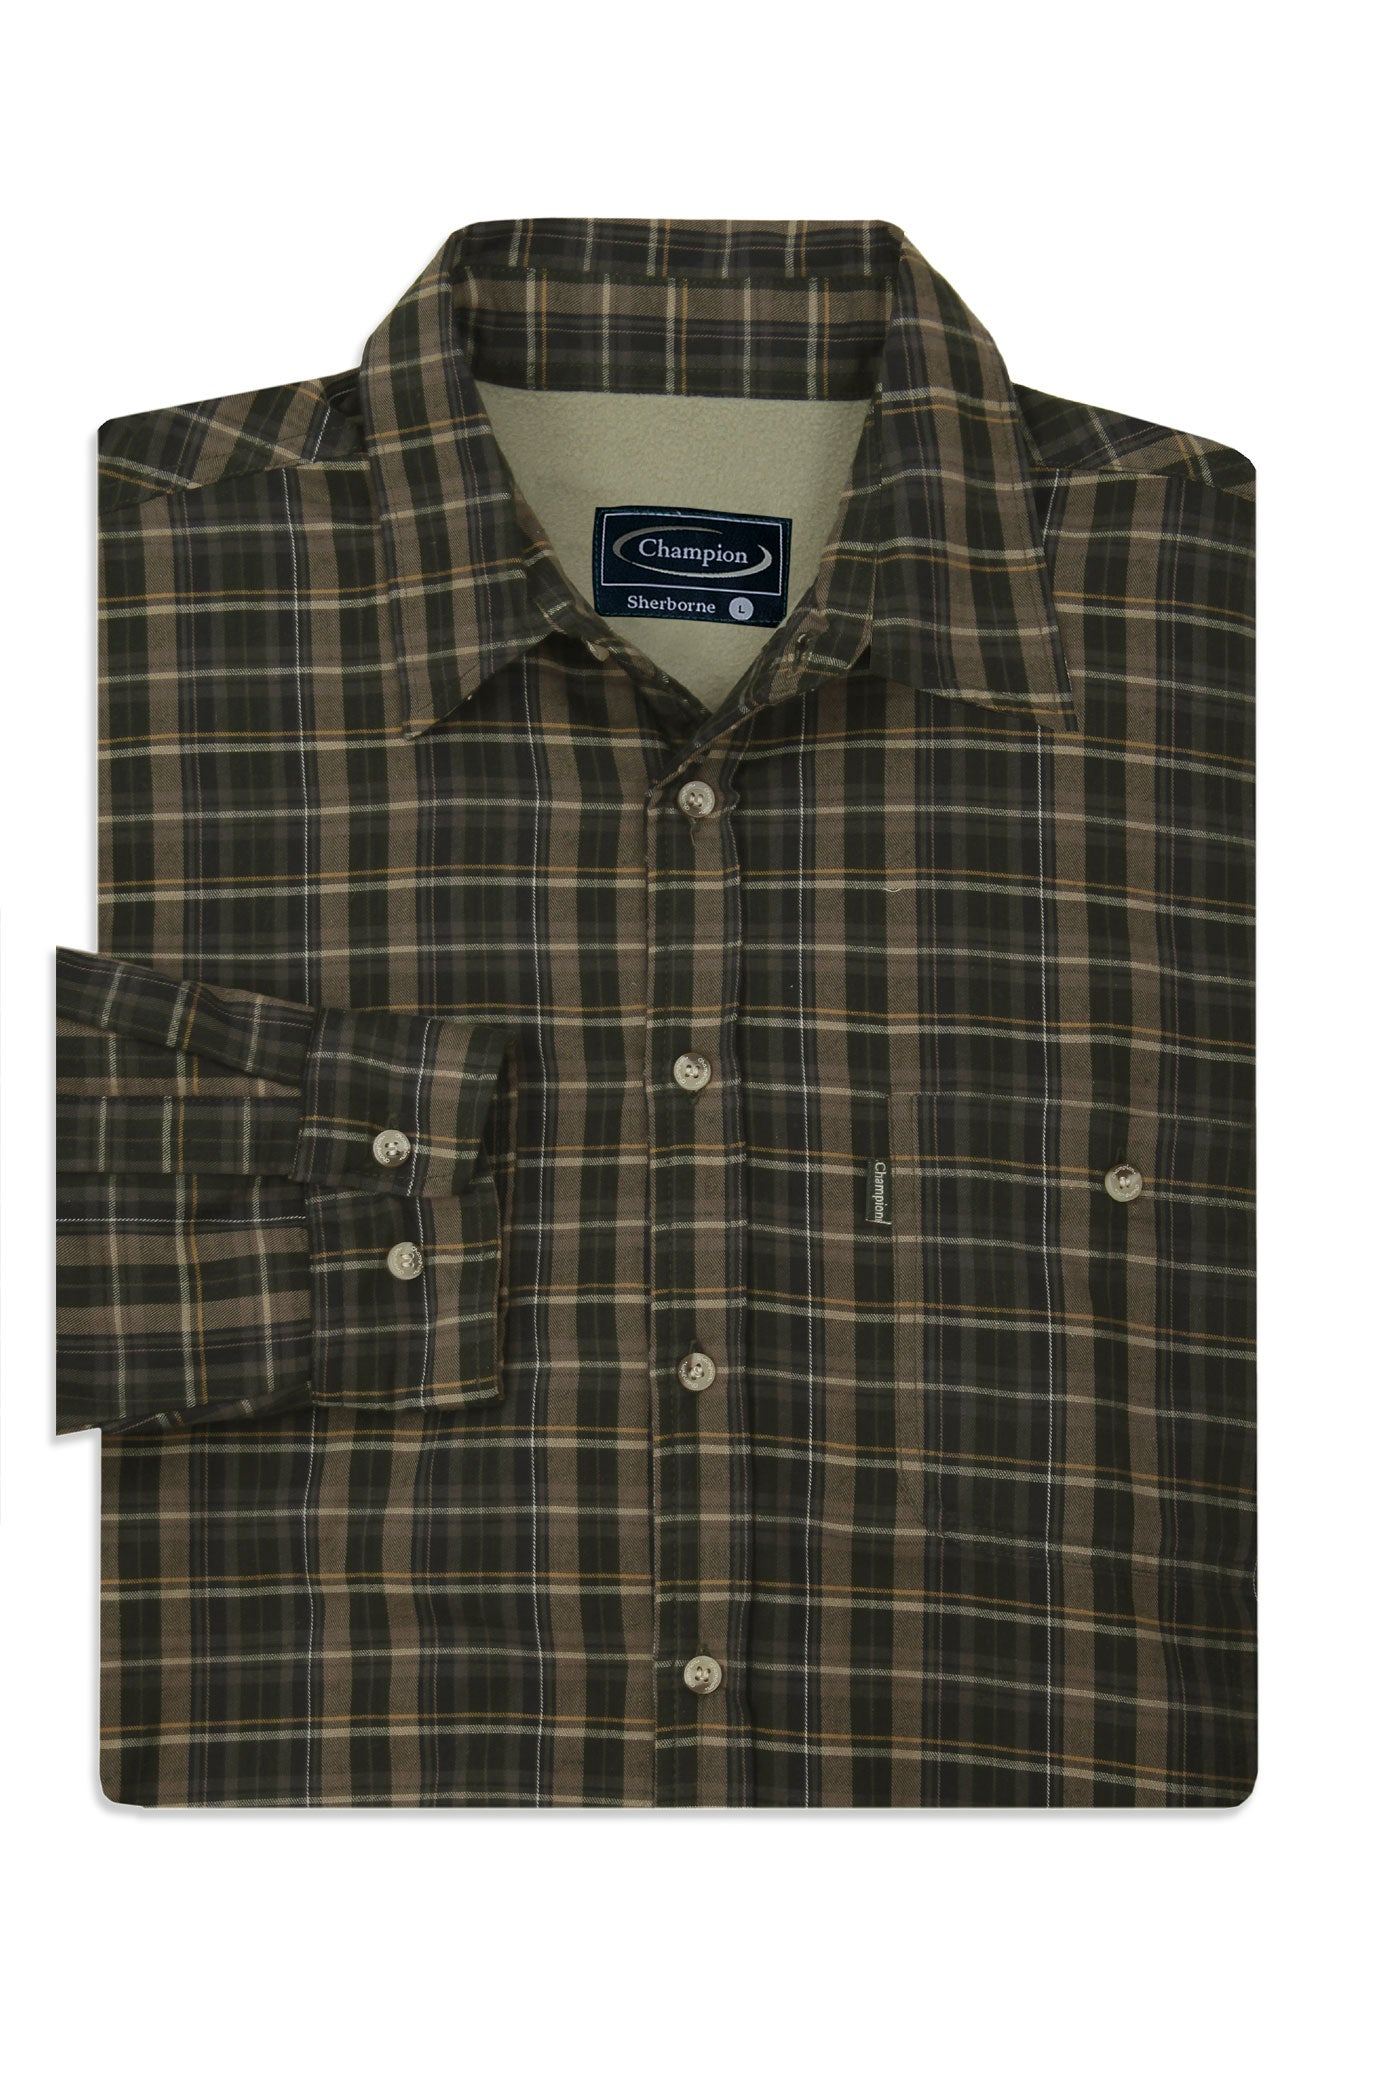 olive tartan Champion Sherborne Shirt Warm Lined Shirt  A country plaid check shirt with a micro fleece lining.